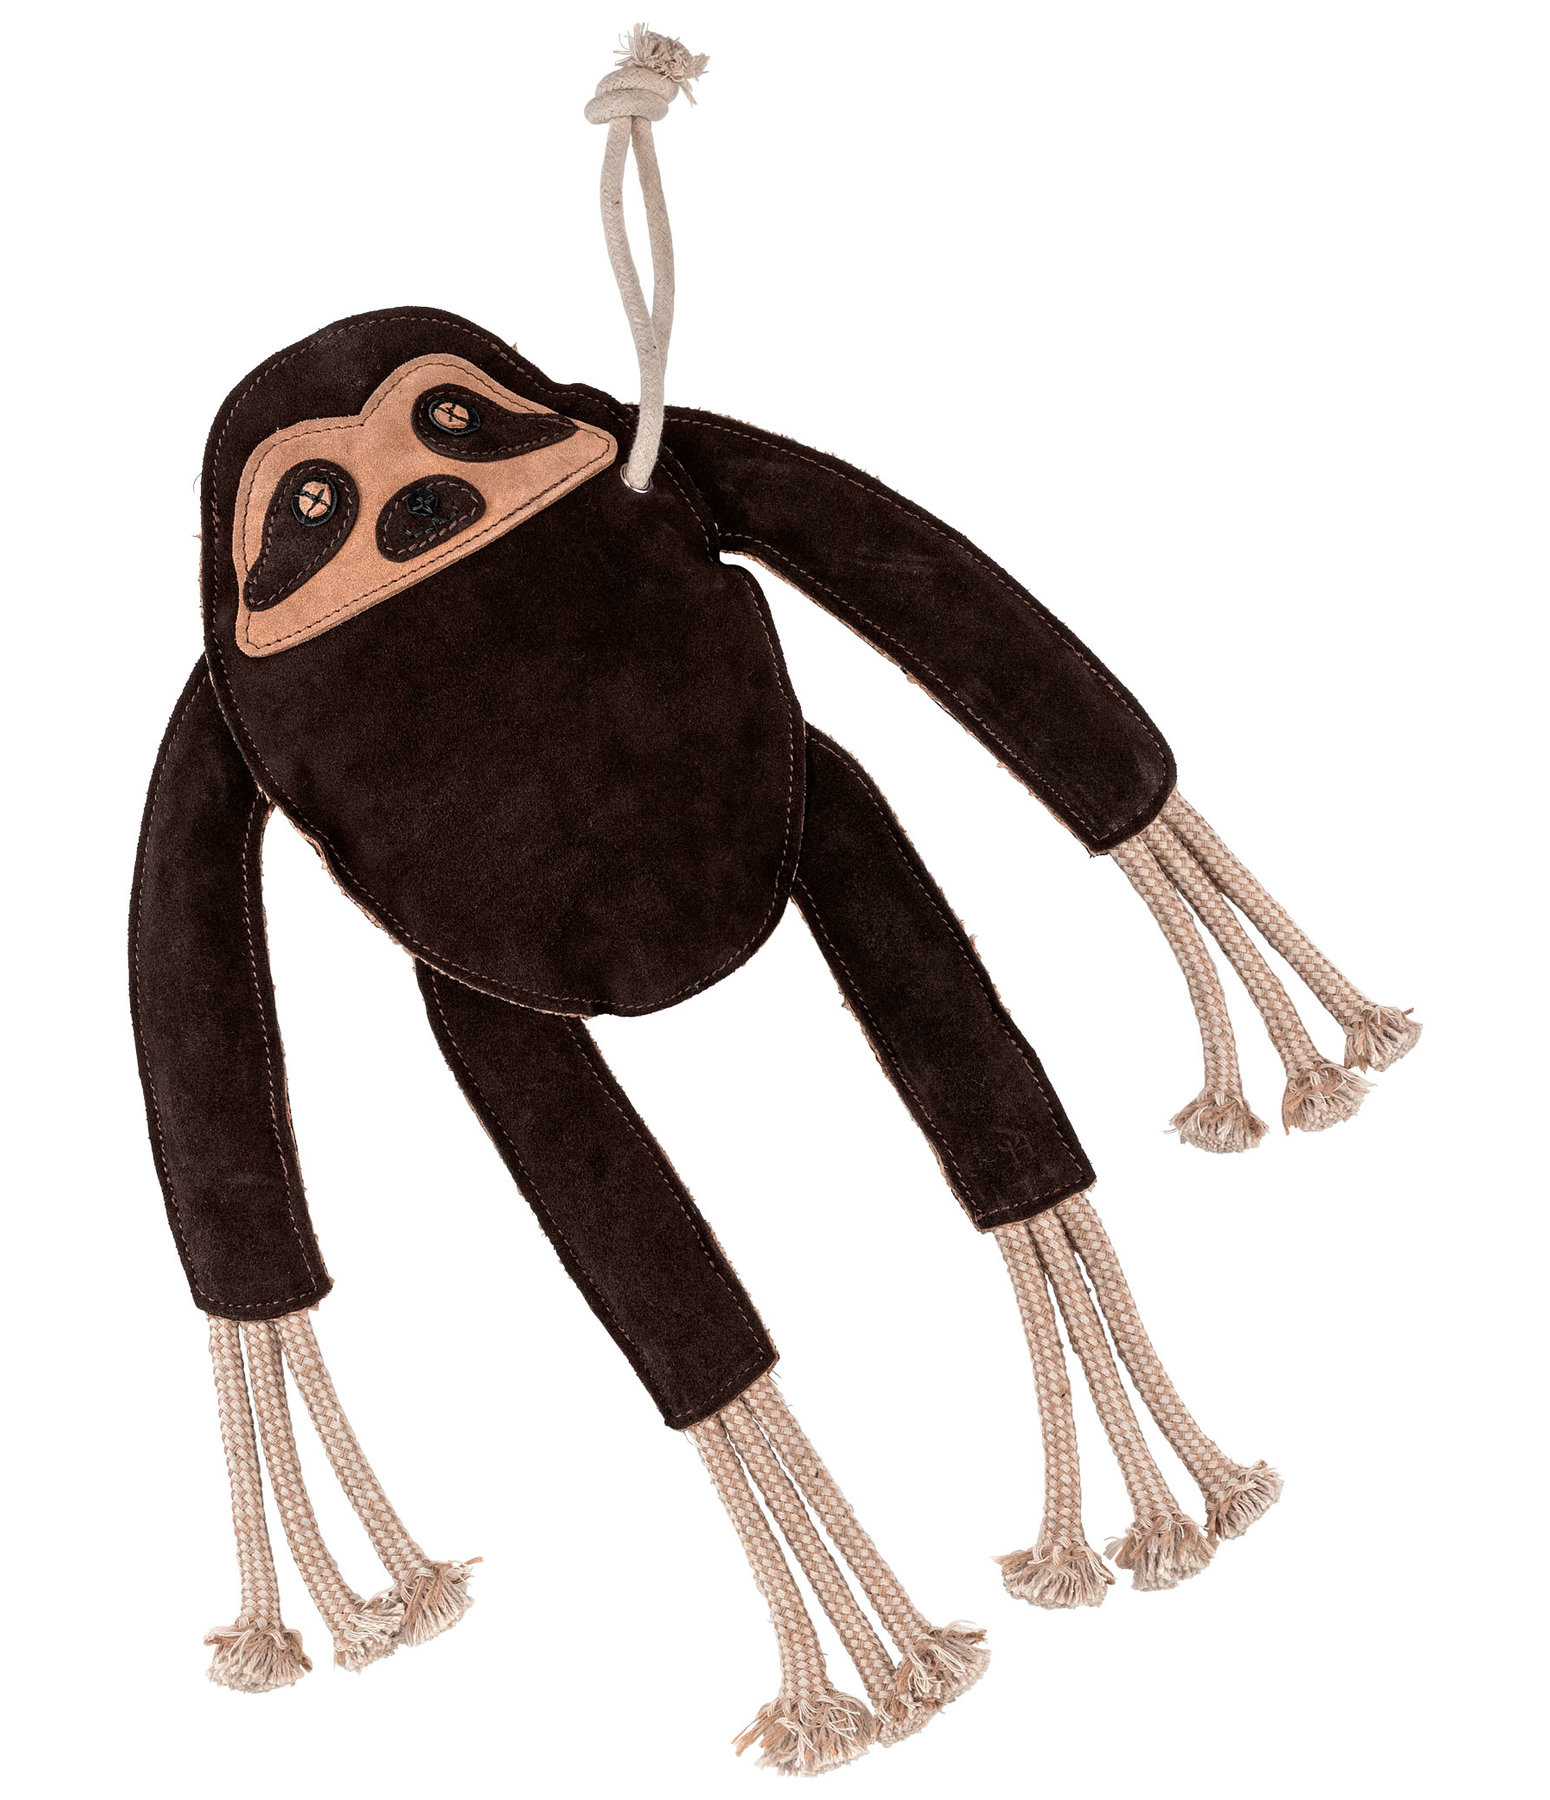 Horse Toy Sloth